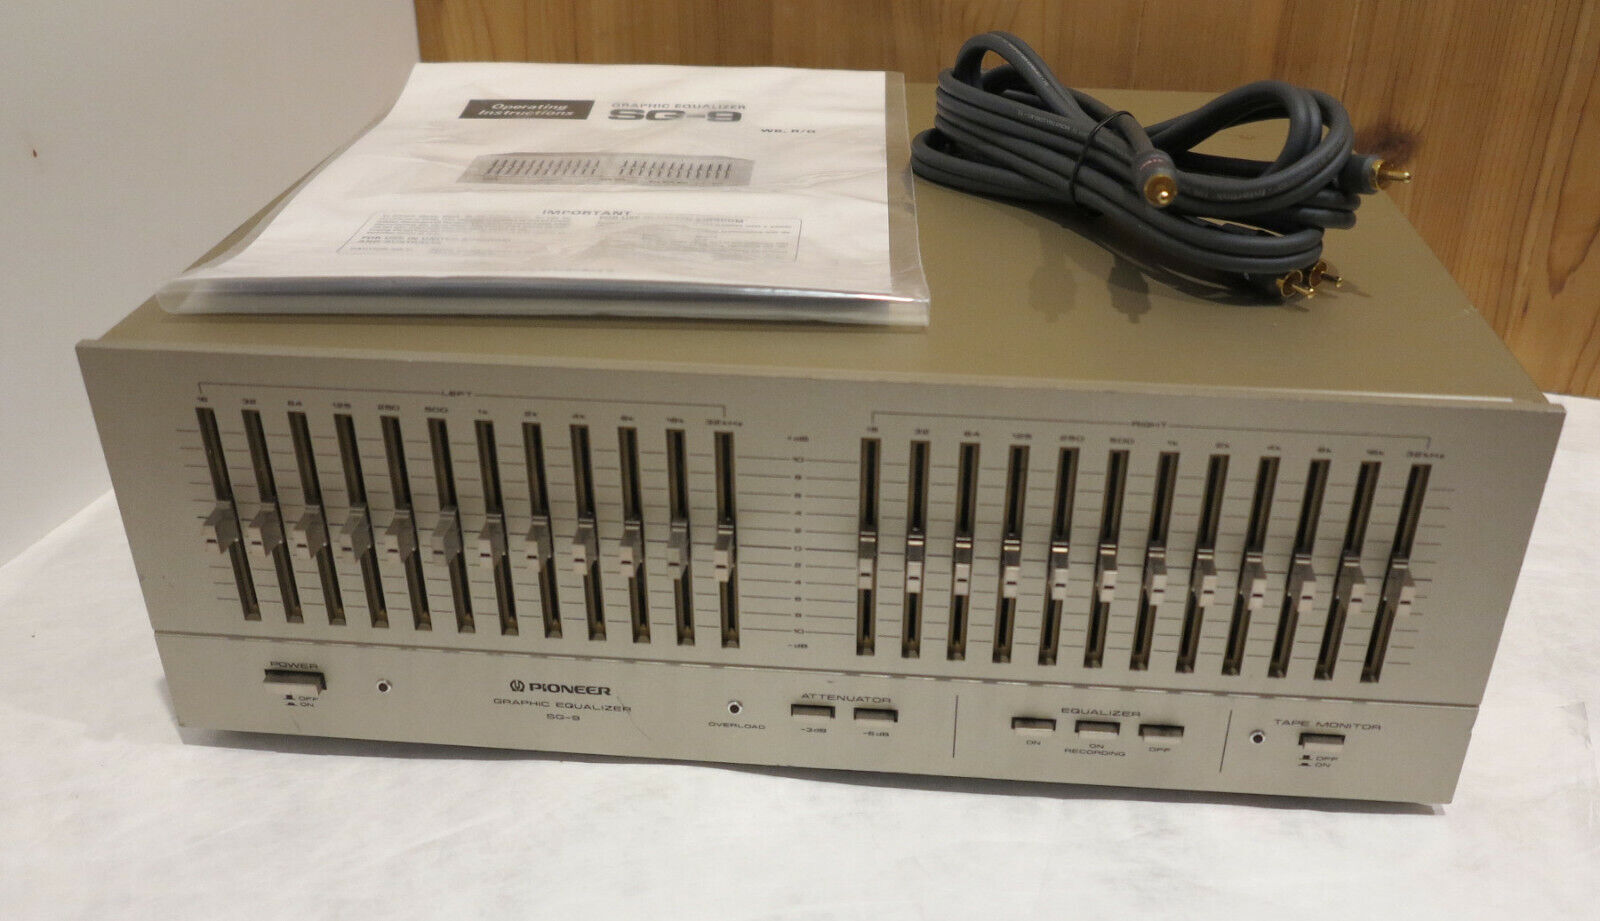 Rebuilt Vintage Audiophile Pioneer SG-9 12 Band Stereo Graphic Equalizer. Buy it now for 625.00